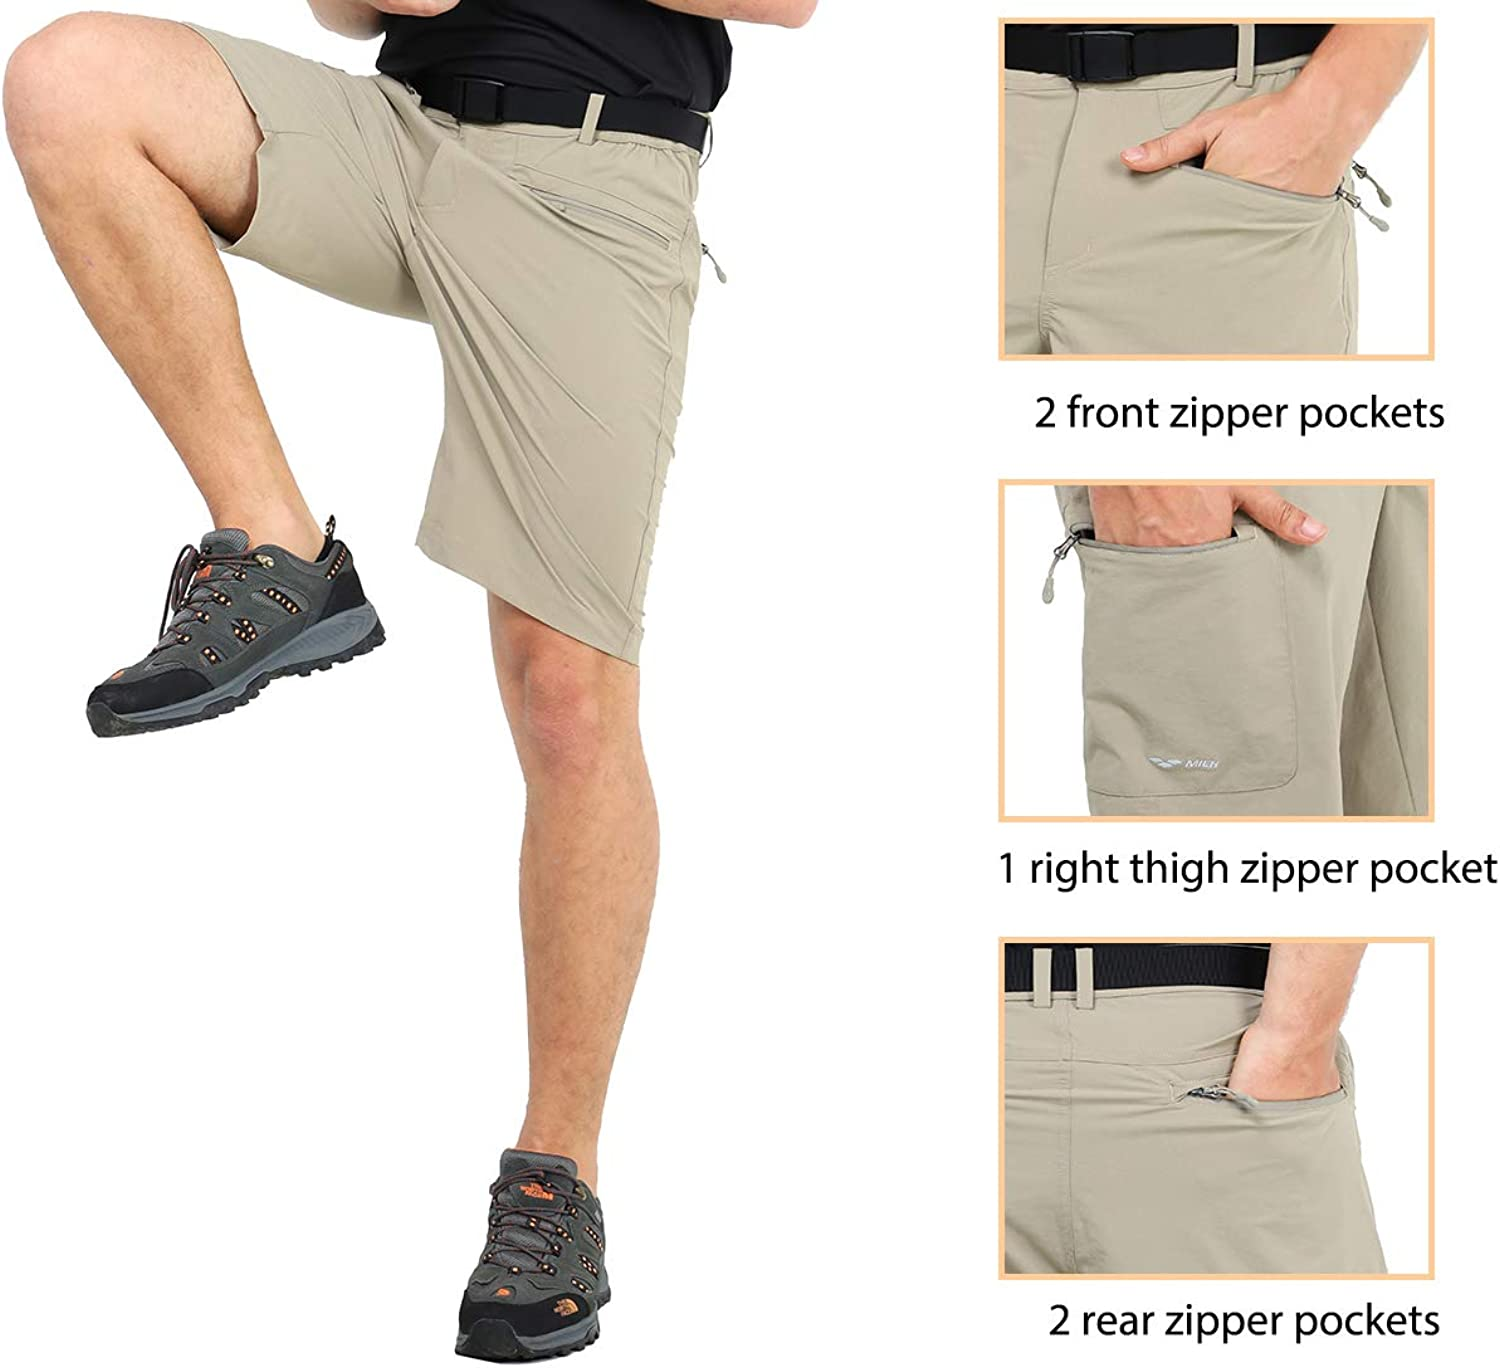 MIER Mens Quick Dry Cargo Shorts Lightweight Stretch Travel Hiking Shorts with 5 Zipper Pockets Water Resistant